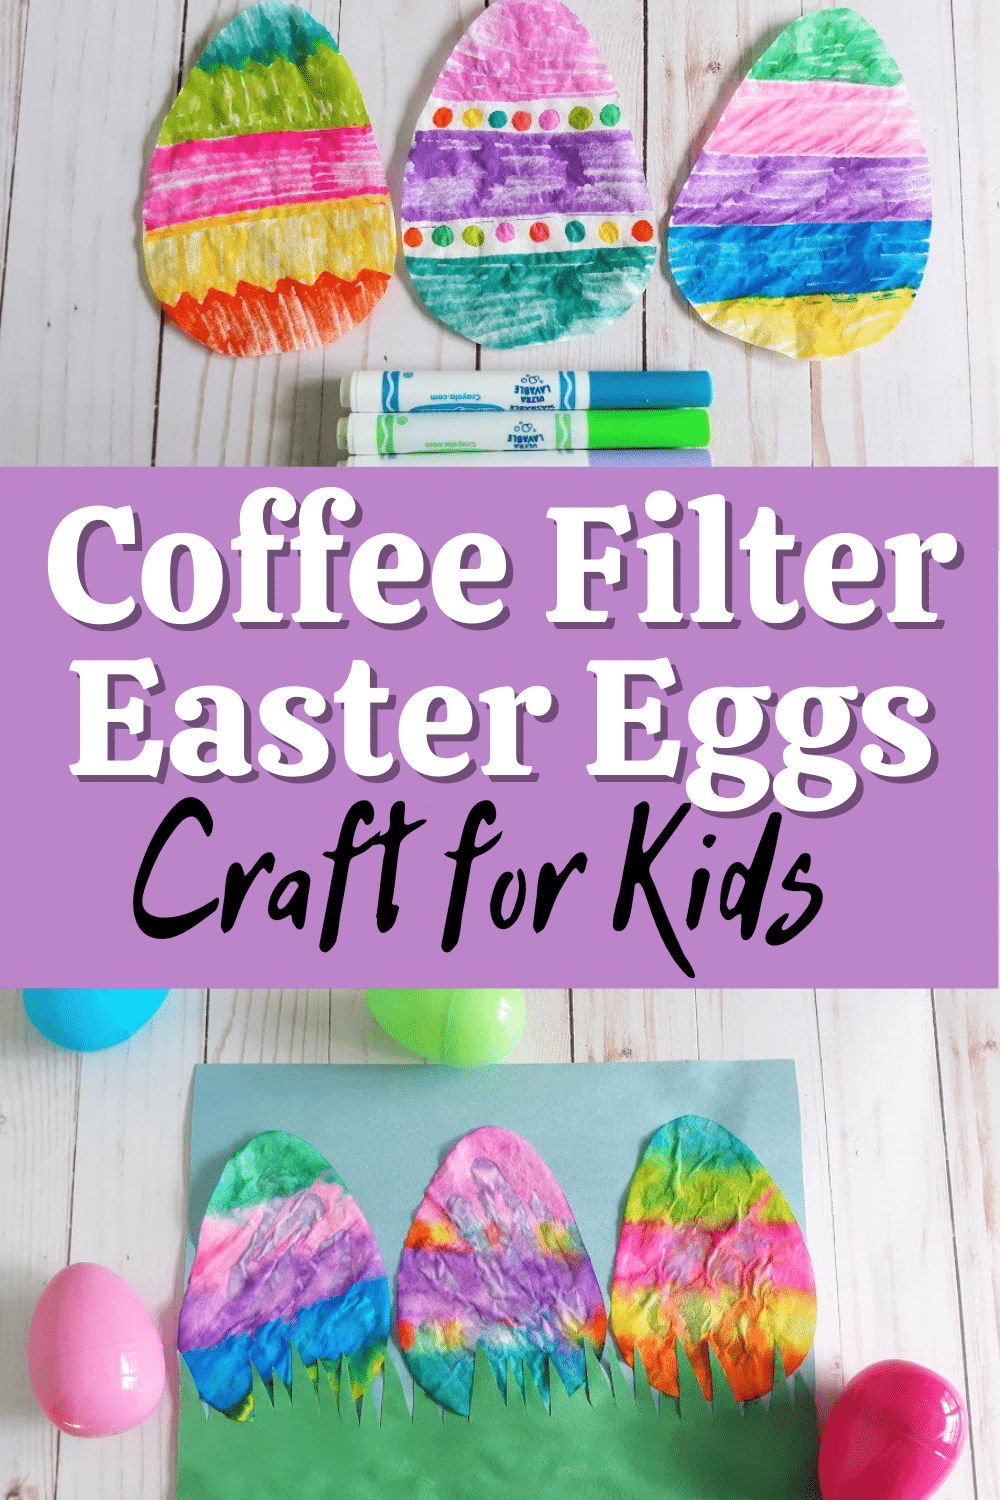 Three coffee filter egg shapes colored with markers lined up next to each other above some markers. White and black text over light purple rectangle in the middle says Coffee Filter Easter Eggs Craft for Kids. Bottom shows three finished coffee filter Easter eggs glued to blue construction paper with green fringe cut construction paper along the bottom. Plastic eggs laying around the craft project.